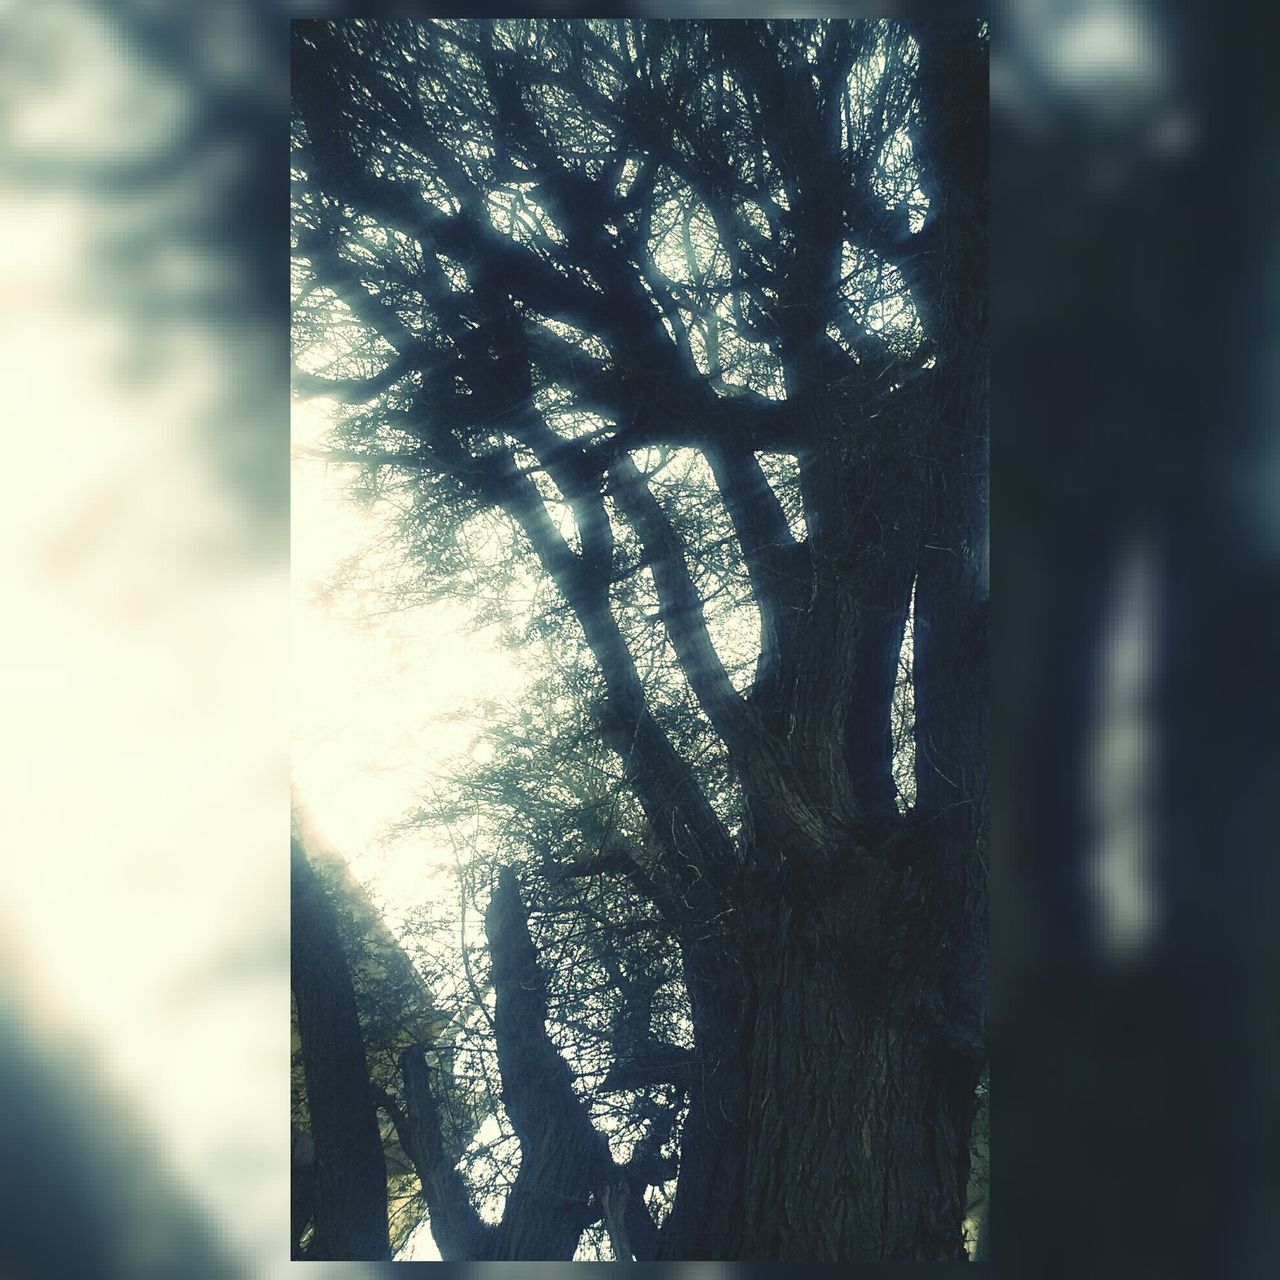 For The Love Of Trees ~ Timepass Clicks Calmintrees Killingtime